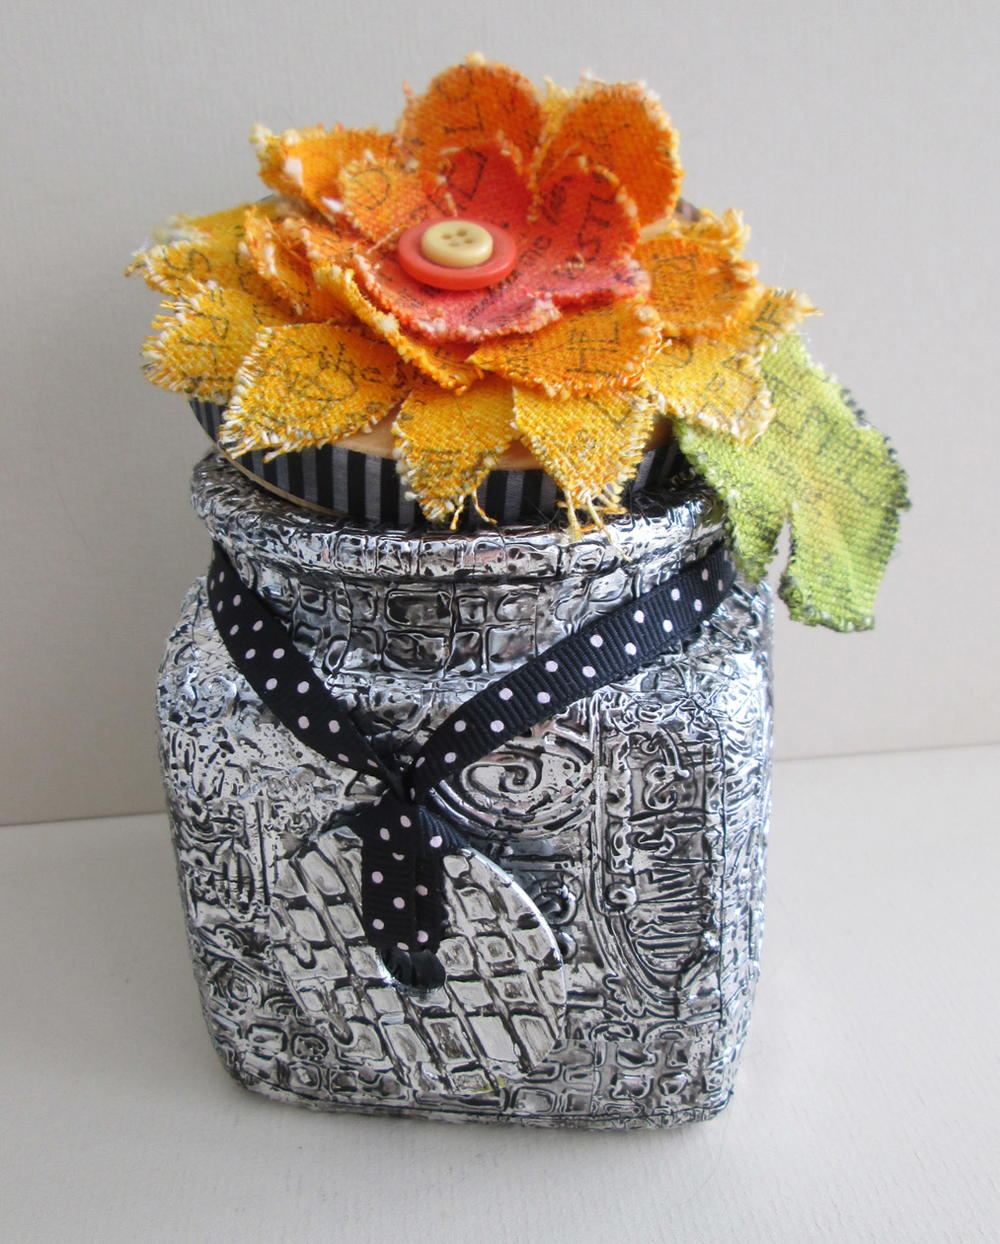 Mixed Media Embossed Decor FaveCrafts